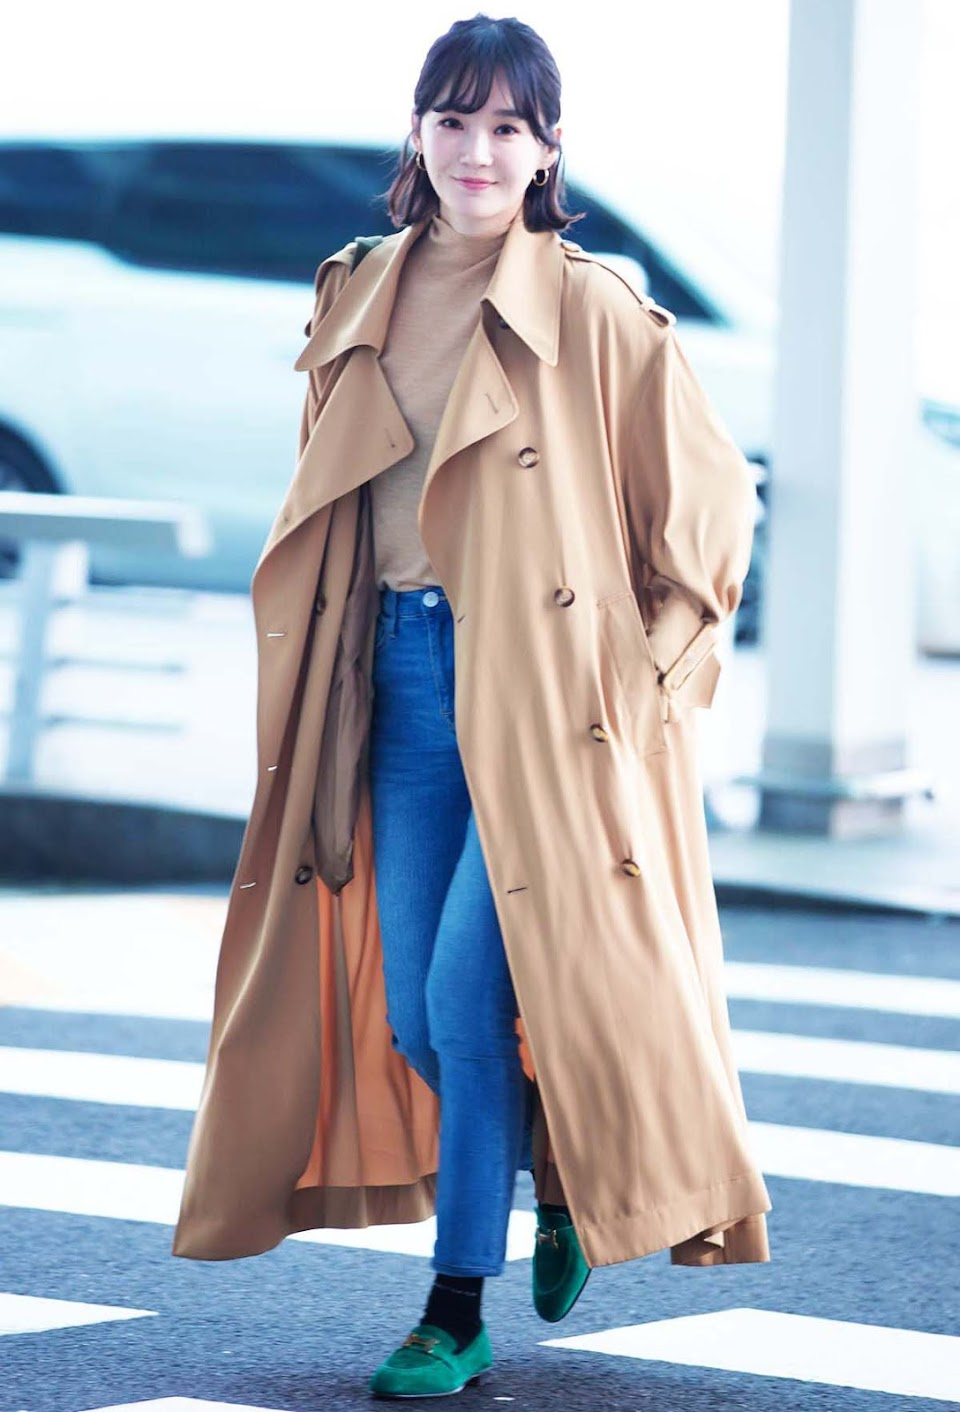 180331_Kang_Min-kyung_at_Incheon_International_Airport_(2)